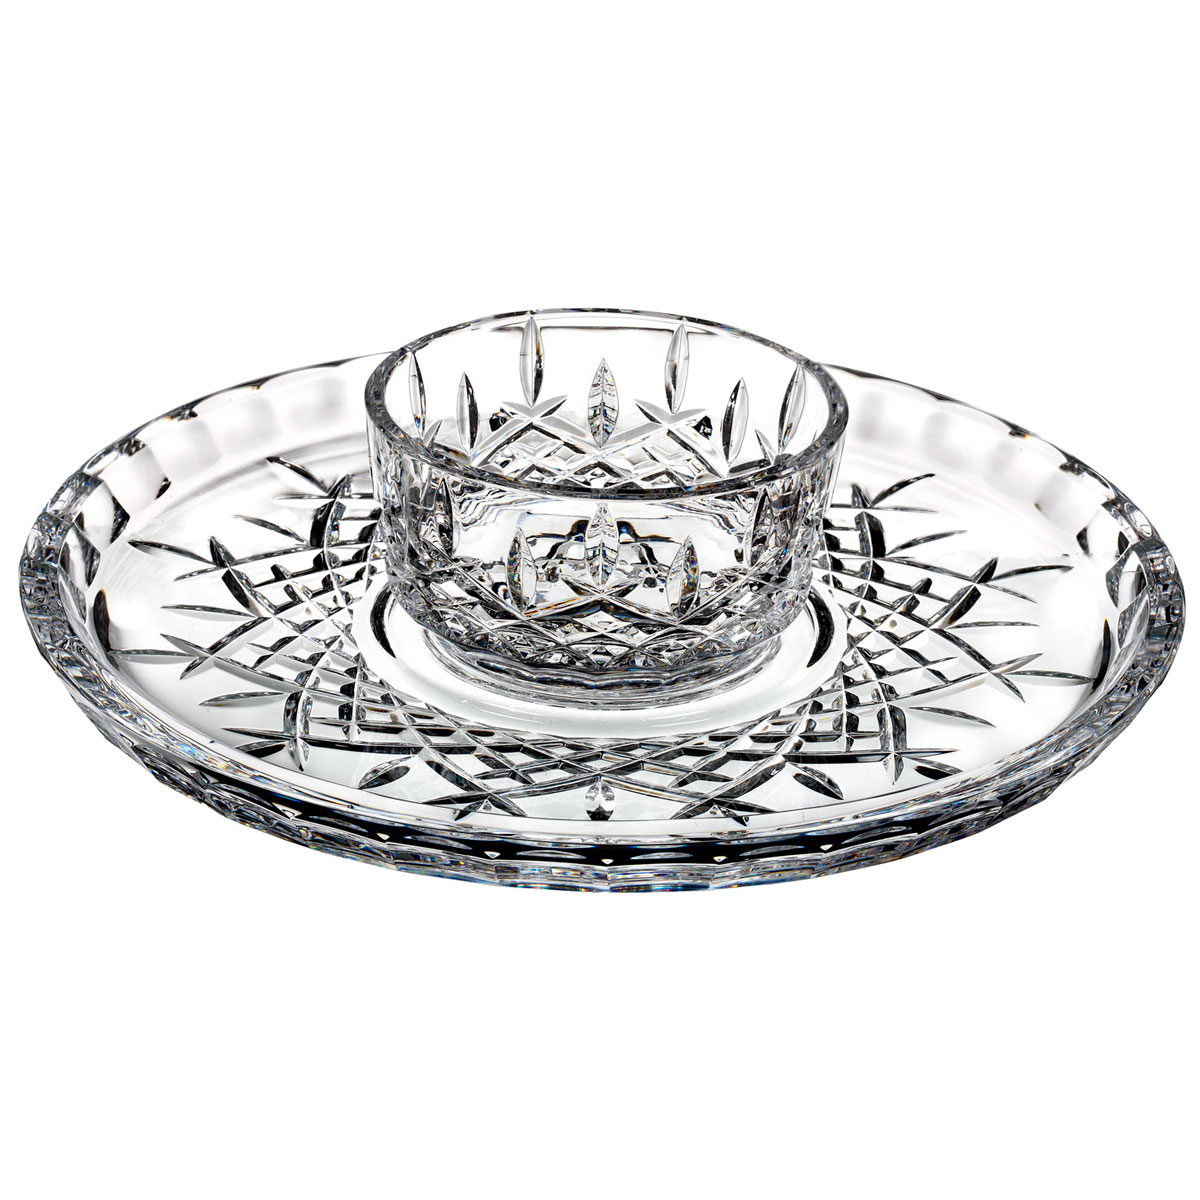 Marquis by Waterford Markham Chip and Dip Crystal Server